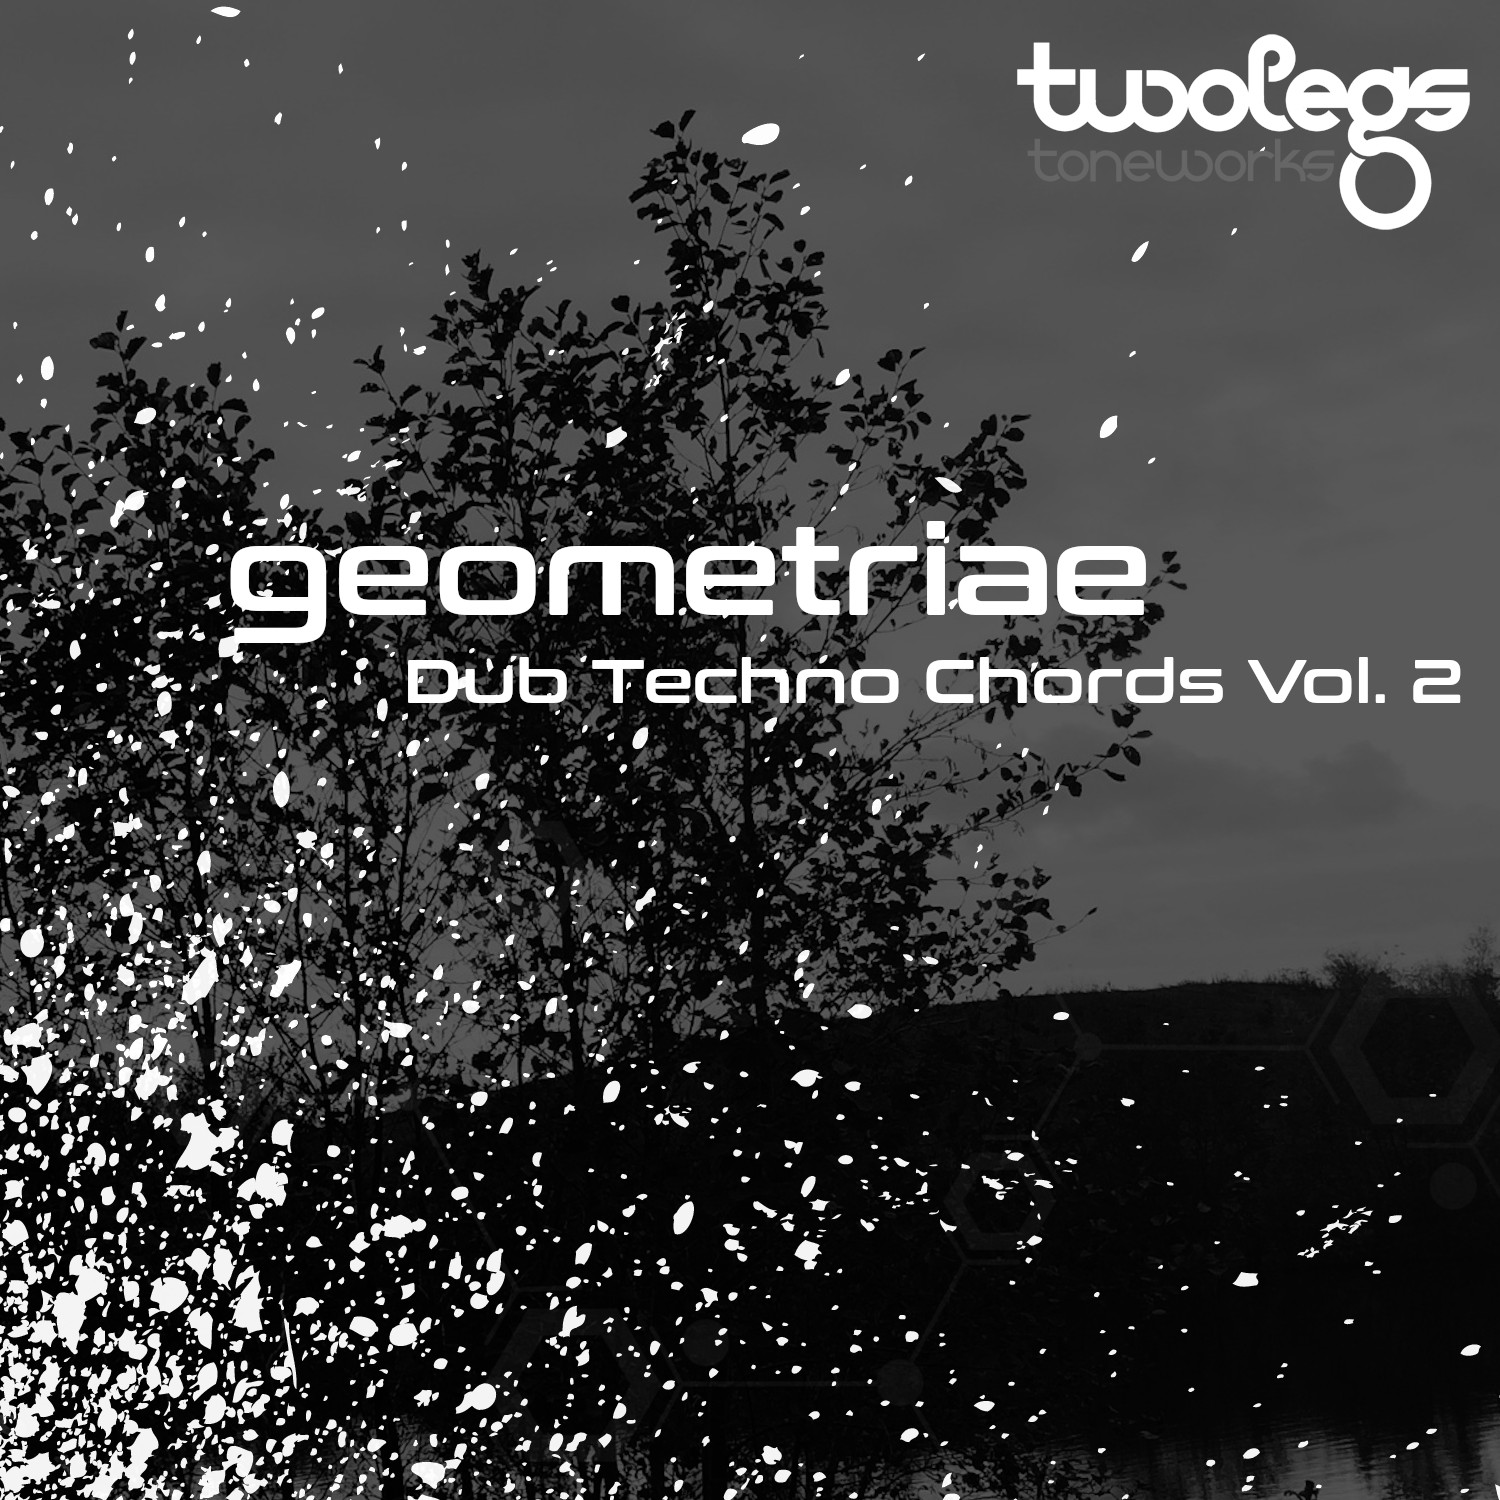 Dub Techno Chords Vol. 2